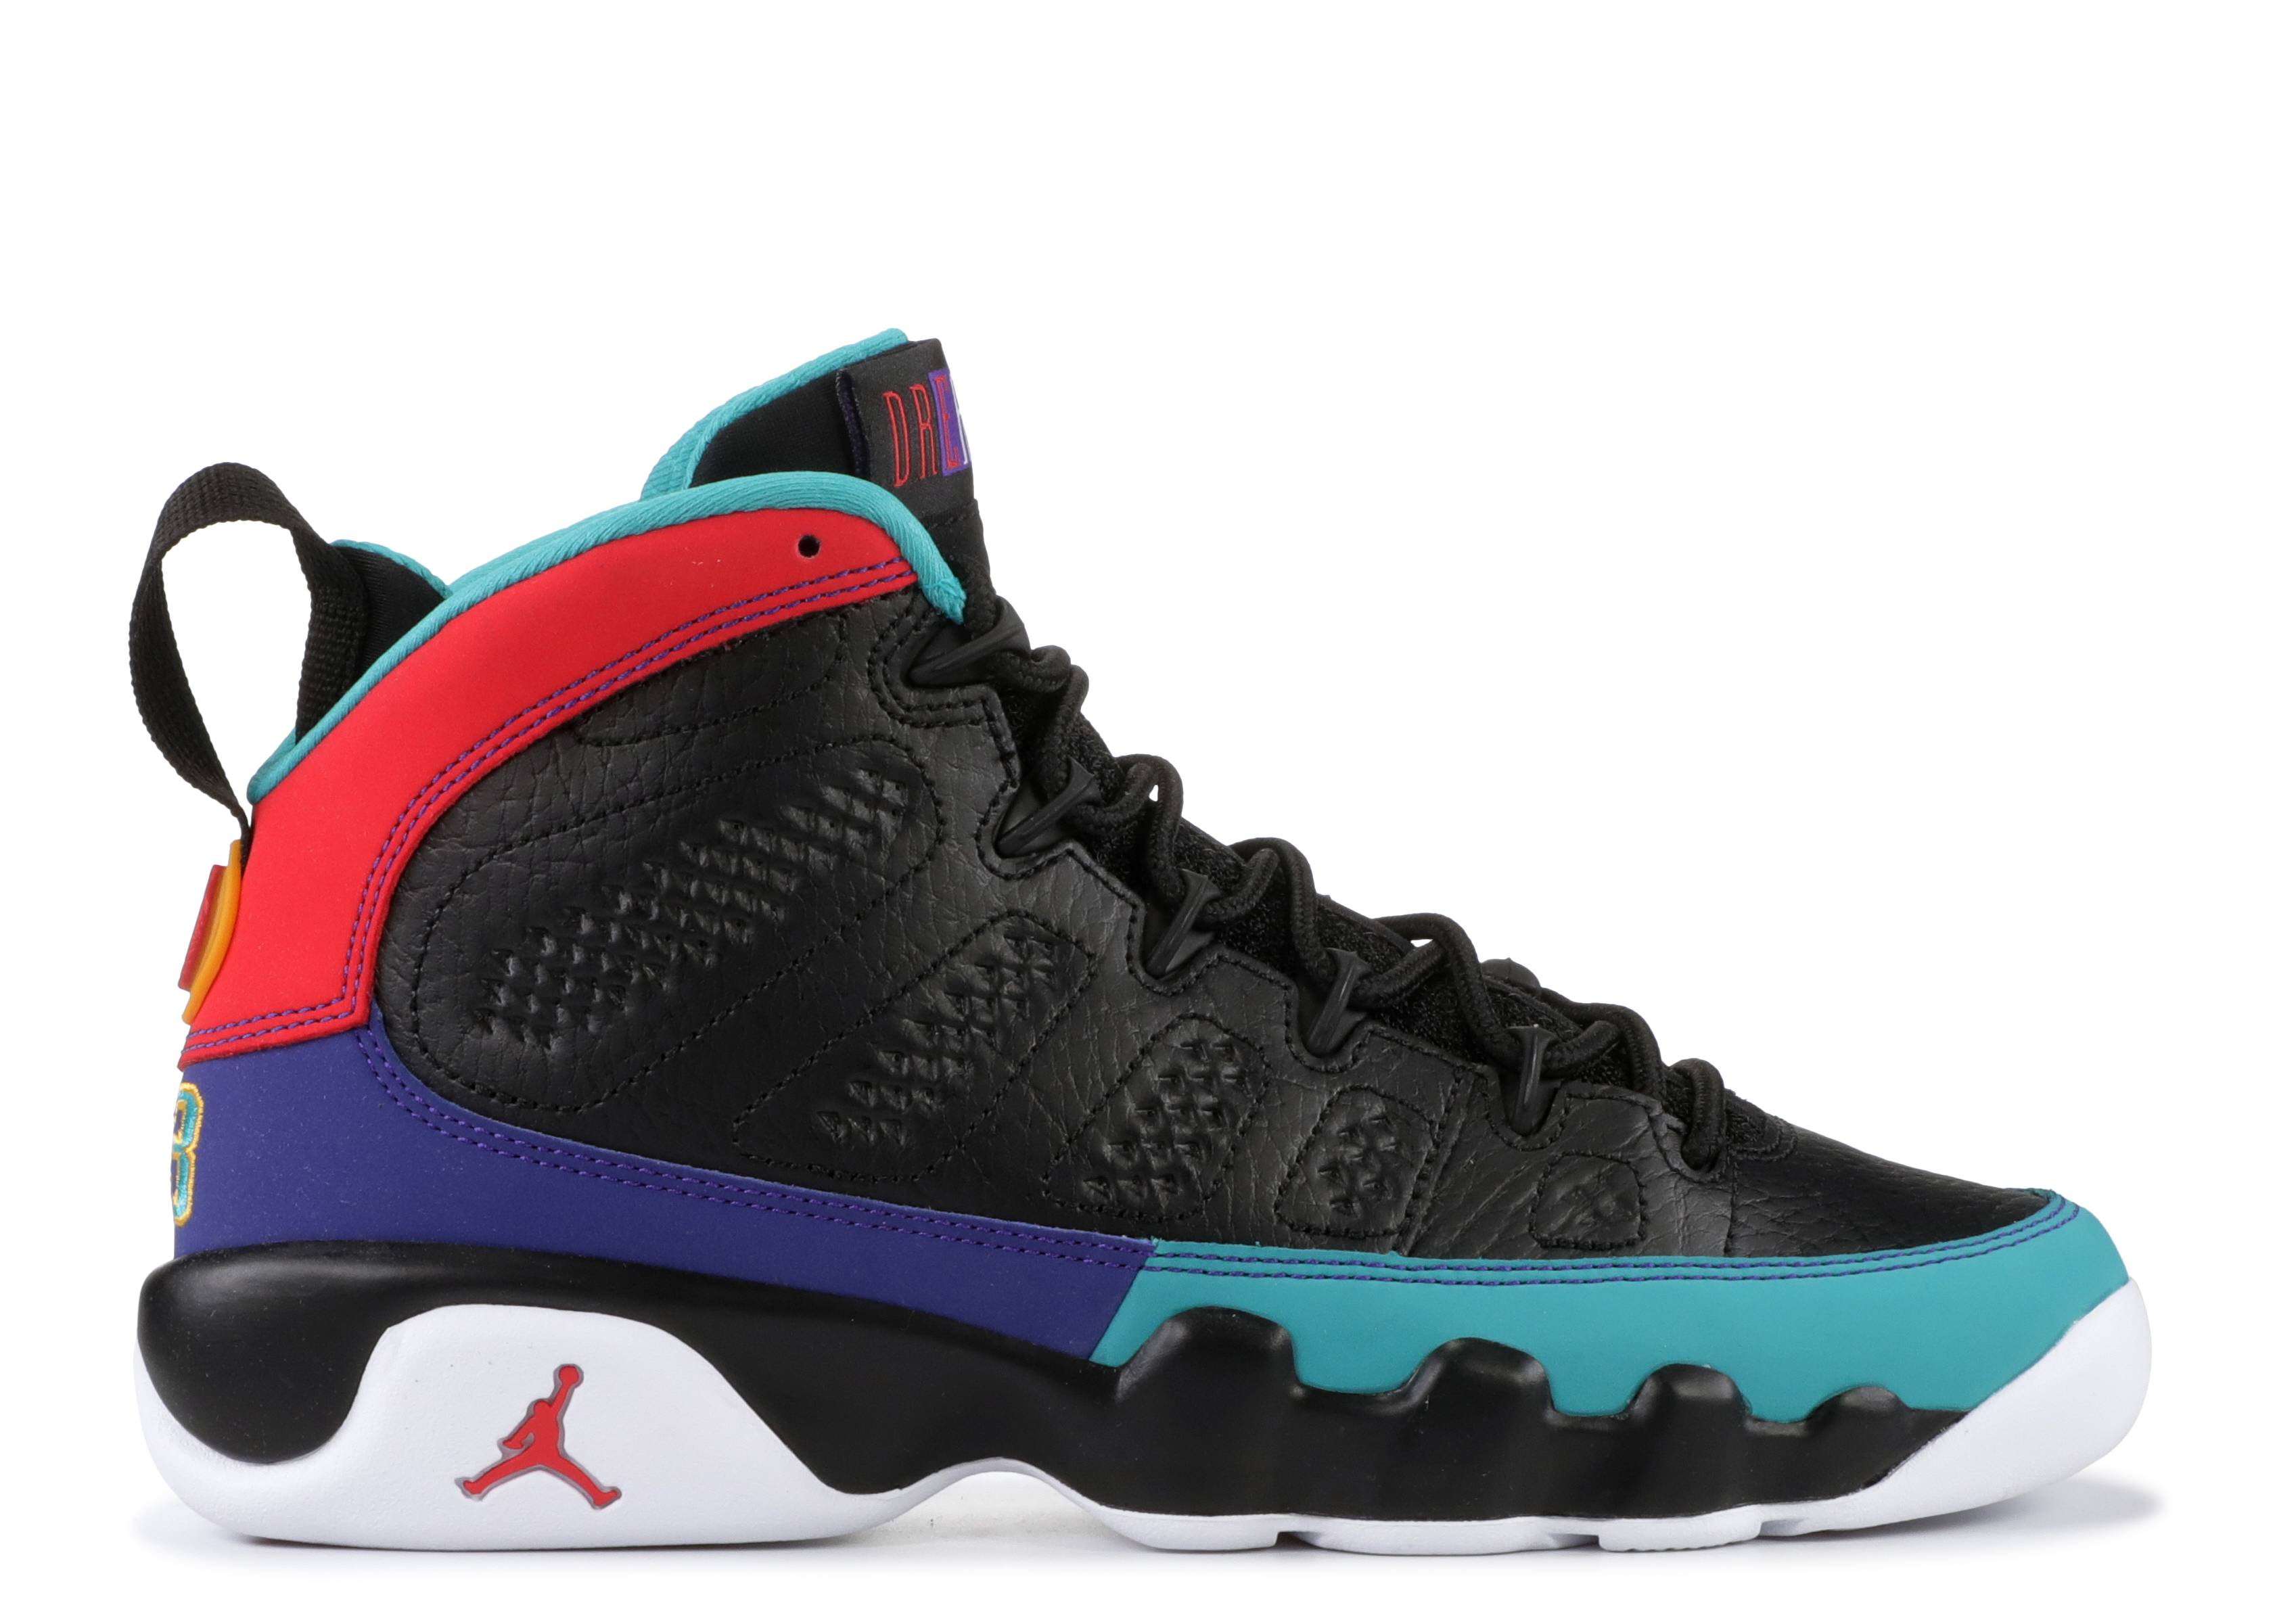 97847a70578f29 Air Jordan 9 Retro GS